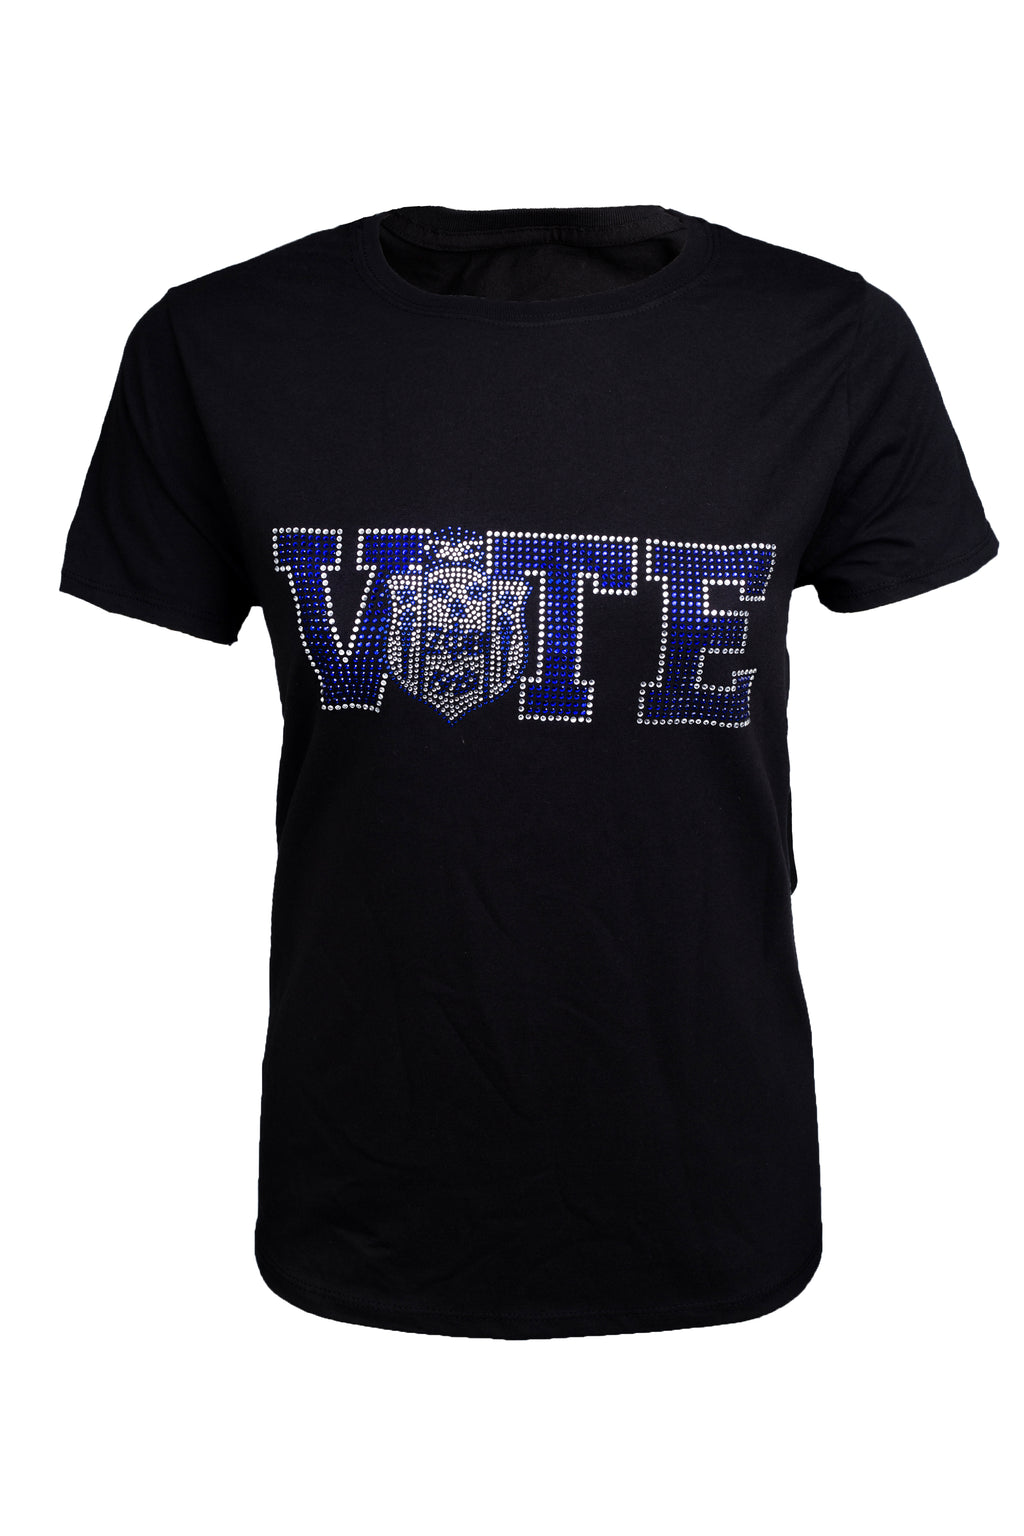 Zeta Phi Beta VOTE Bling Shirts